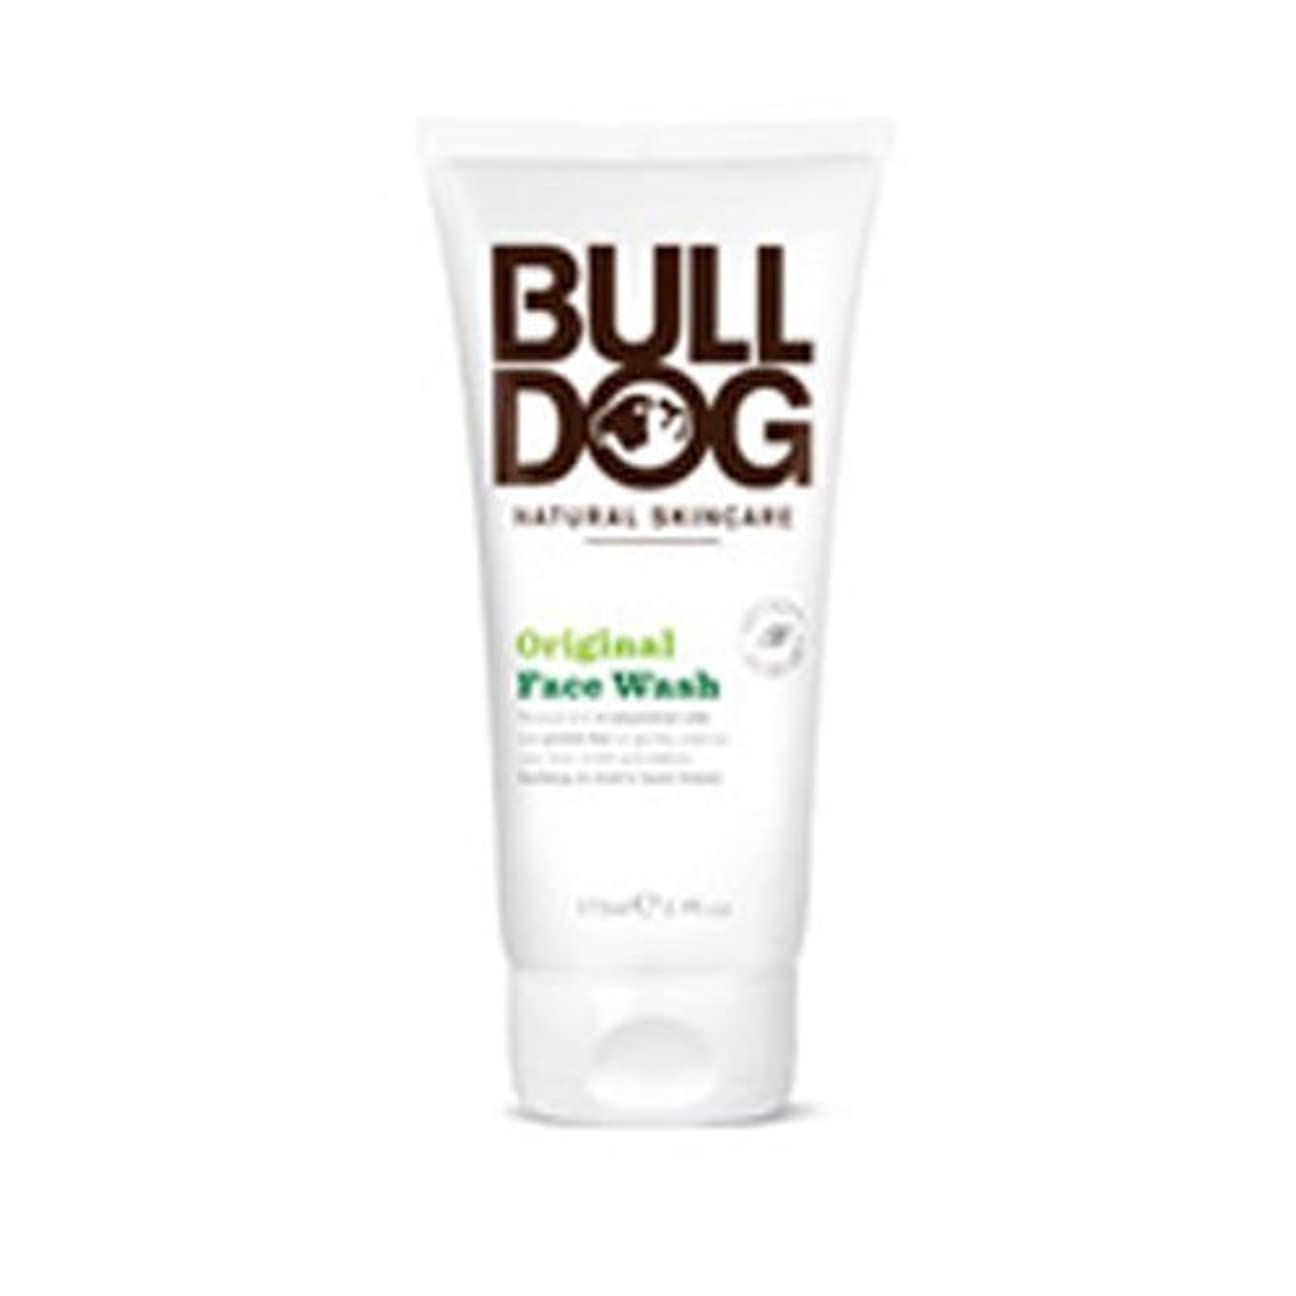 呼吸短命円形の海外直送品Original Face Wash, 5.9 oz by Bulldog Natural Skincare